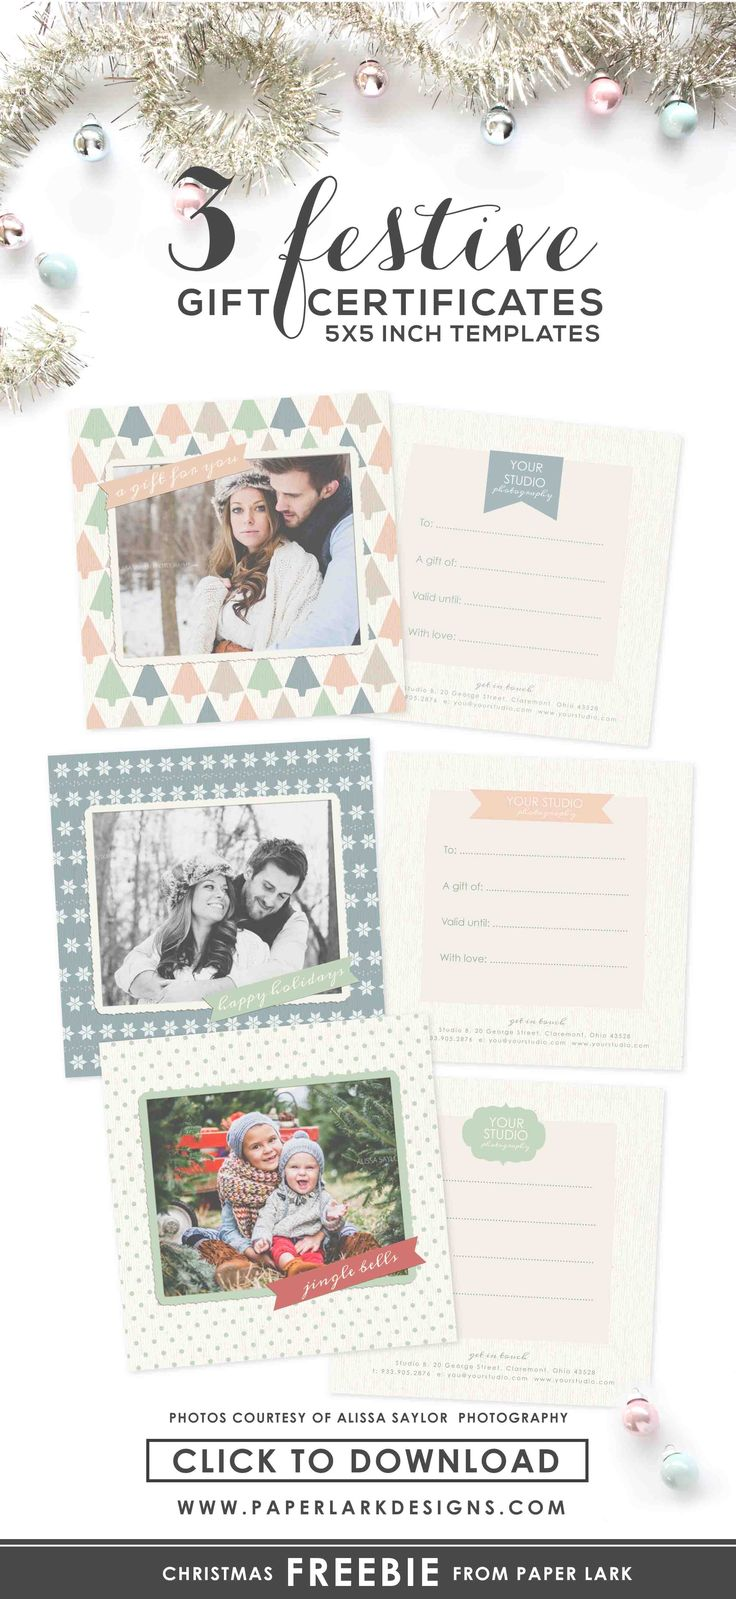 11 best gift certificate images on pinterest free gift certificate free download festive gift certificate templates download them for free at http yelopaper